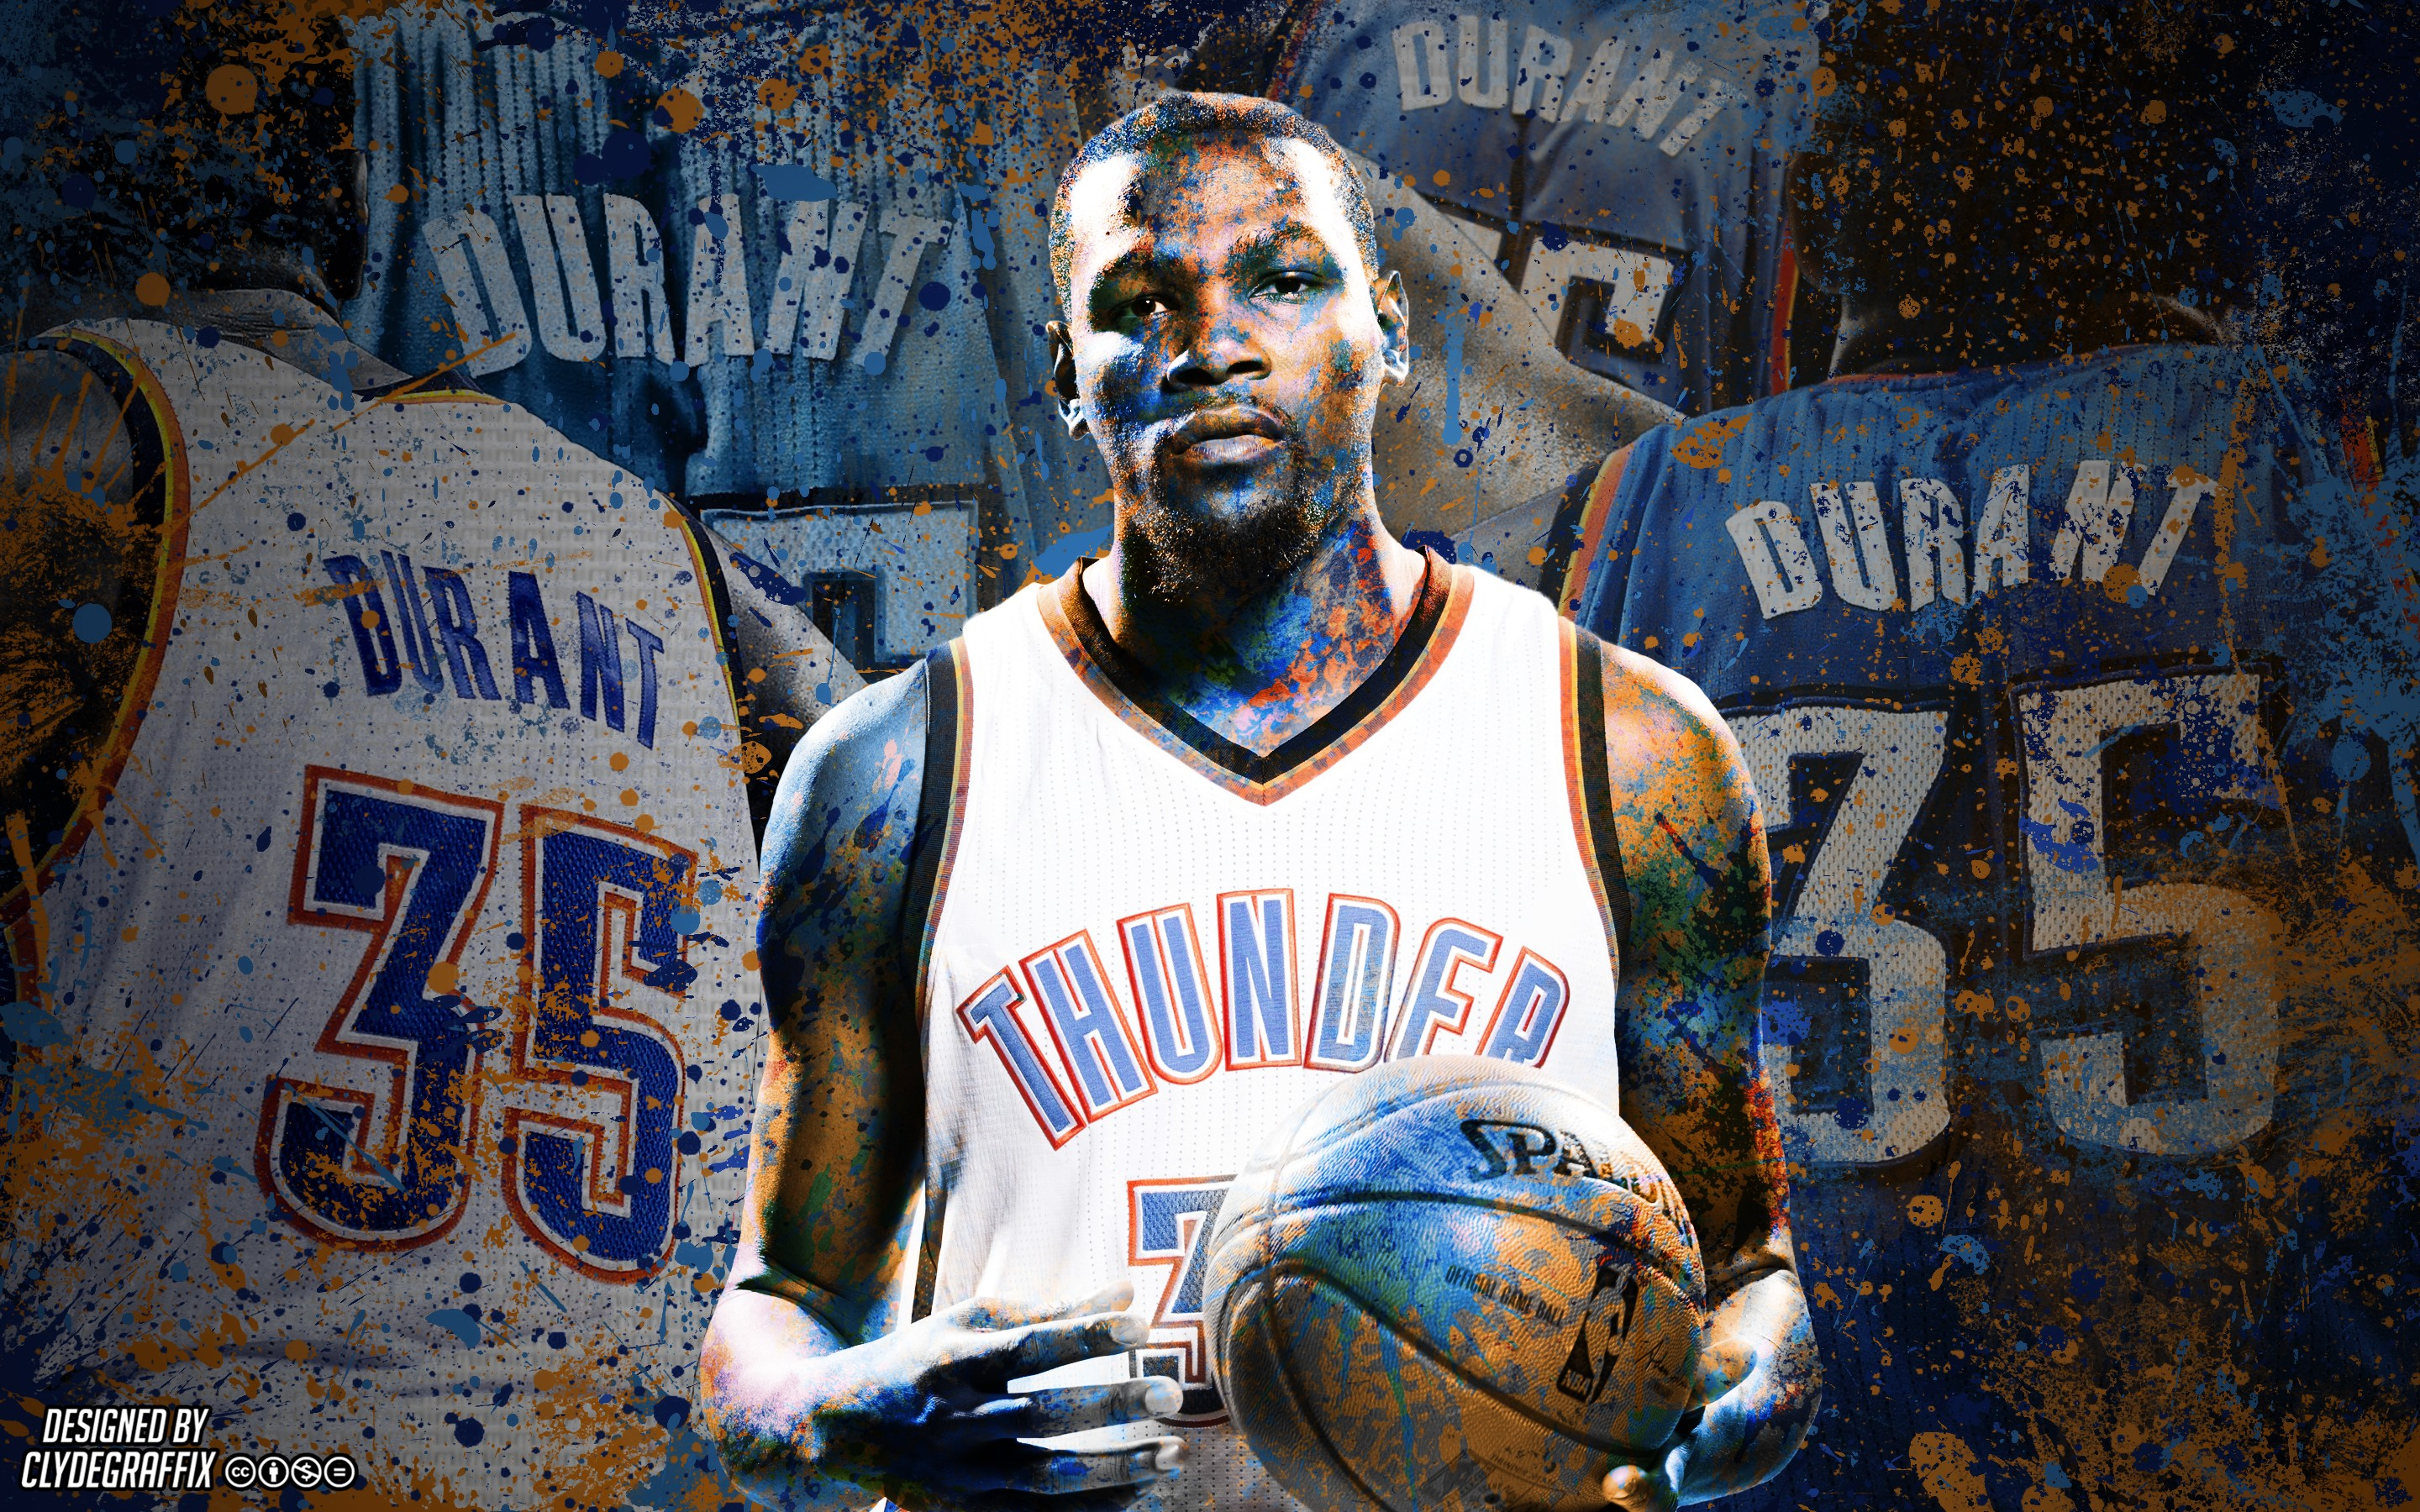 Kevin Durant Wallpaper 1 Download Free Awesome HD Backgrounds For